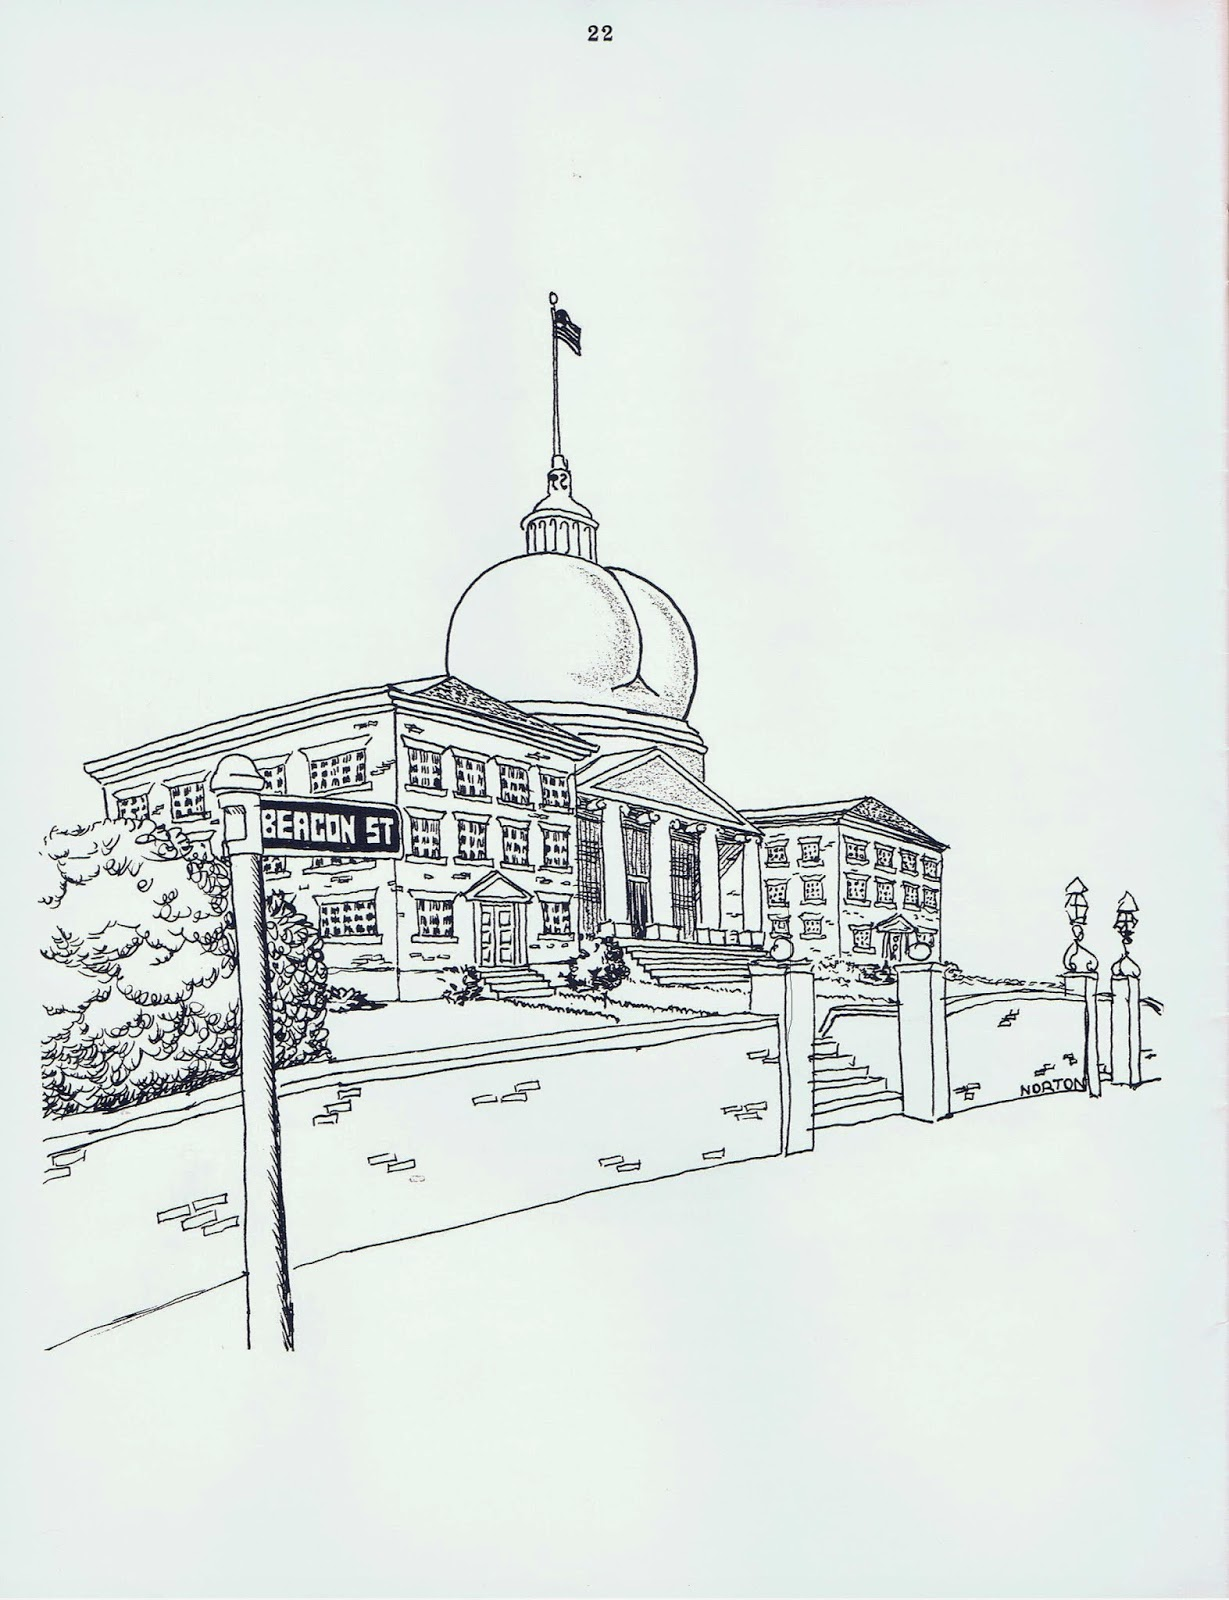 Yahoo, Commencement 1966 edition cartoon, depicts Capitol dome as ass